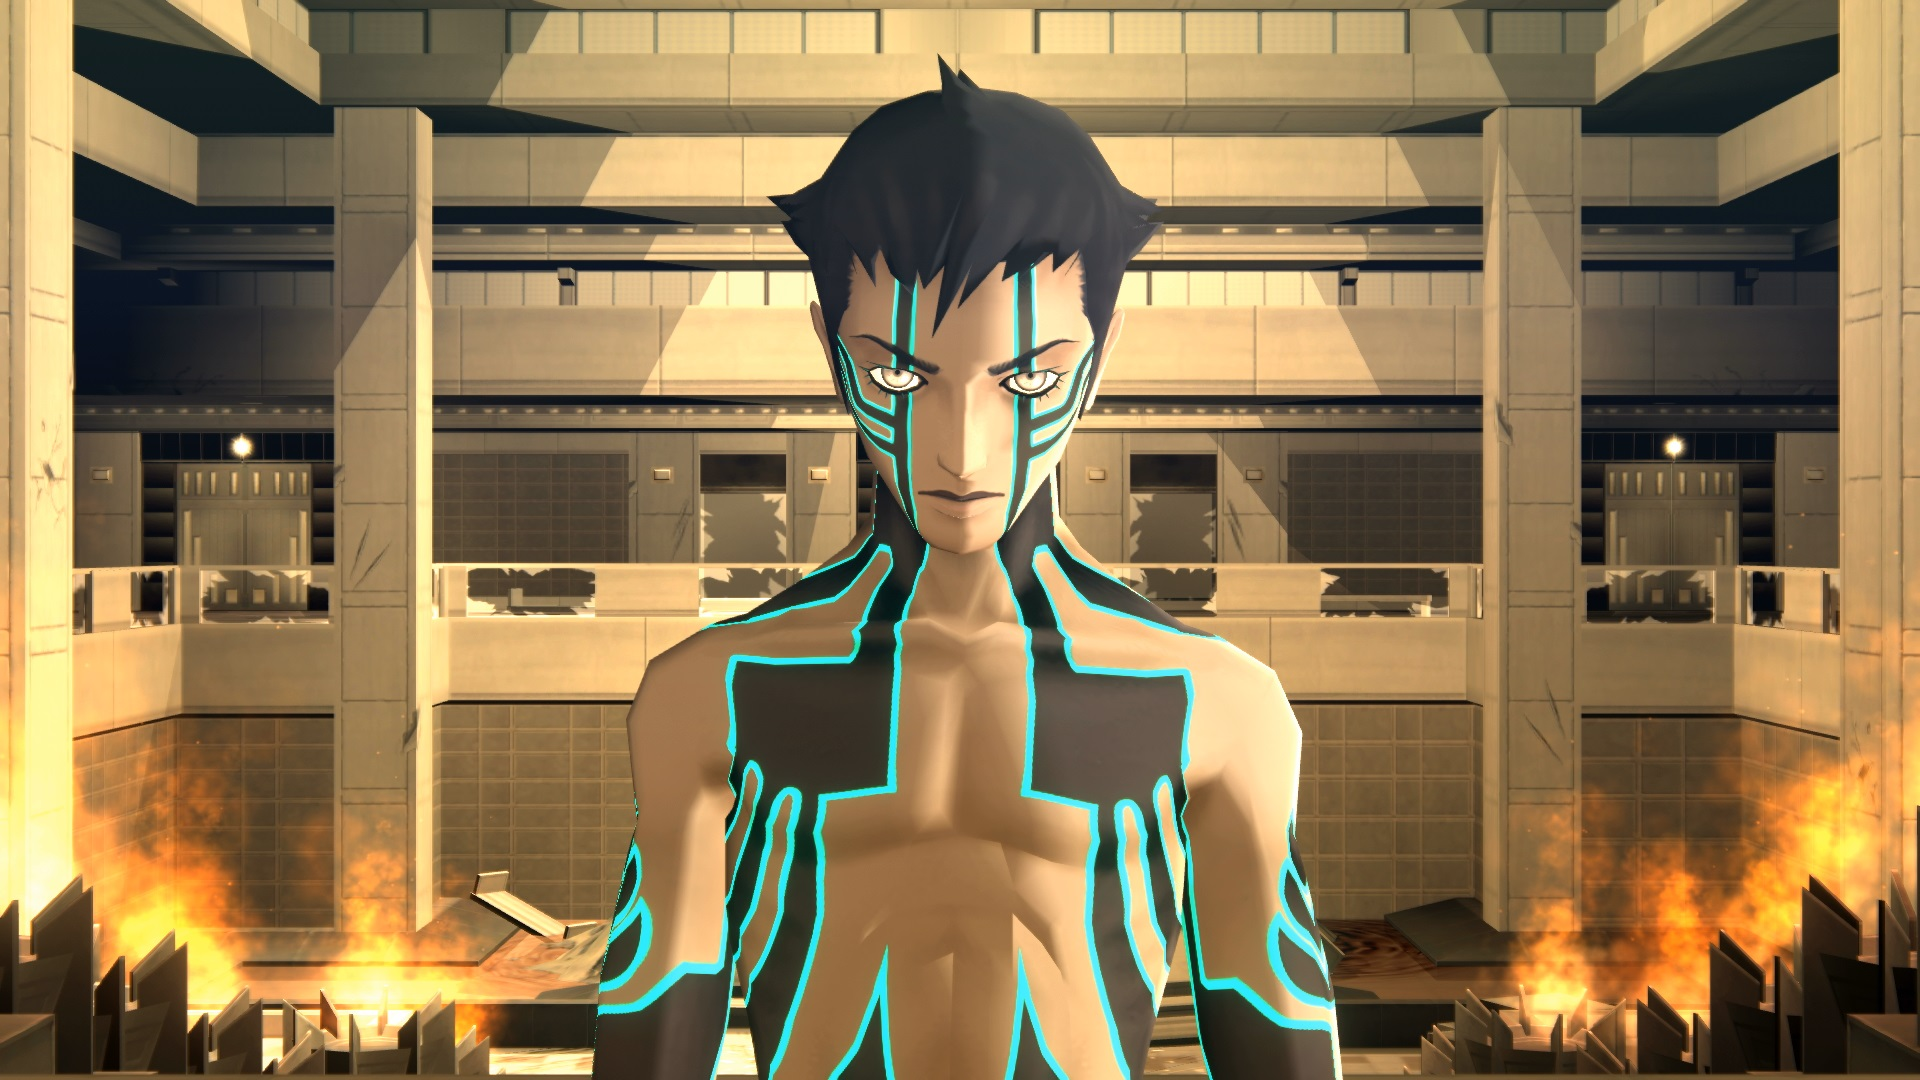 Yep, Shin Megami Tensei III Nocturne HD Remaster still looks great screenshot